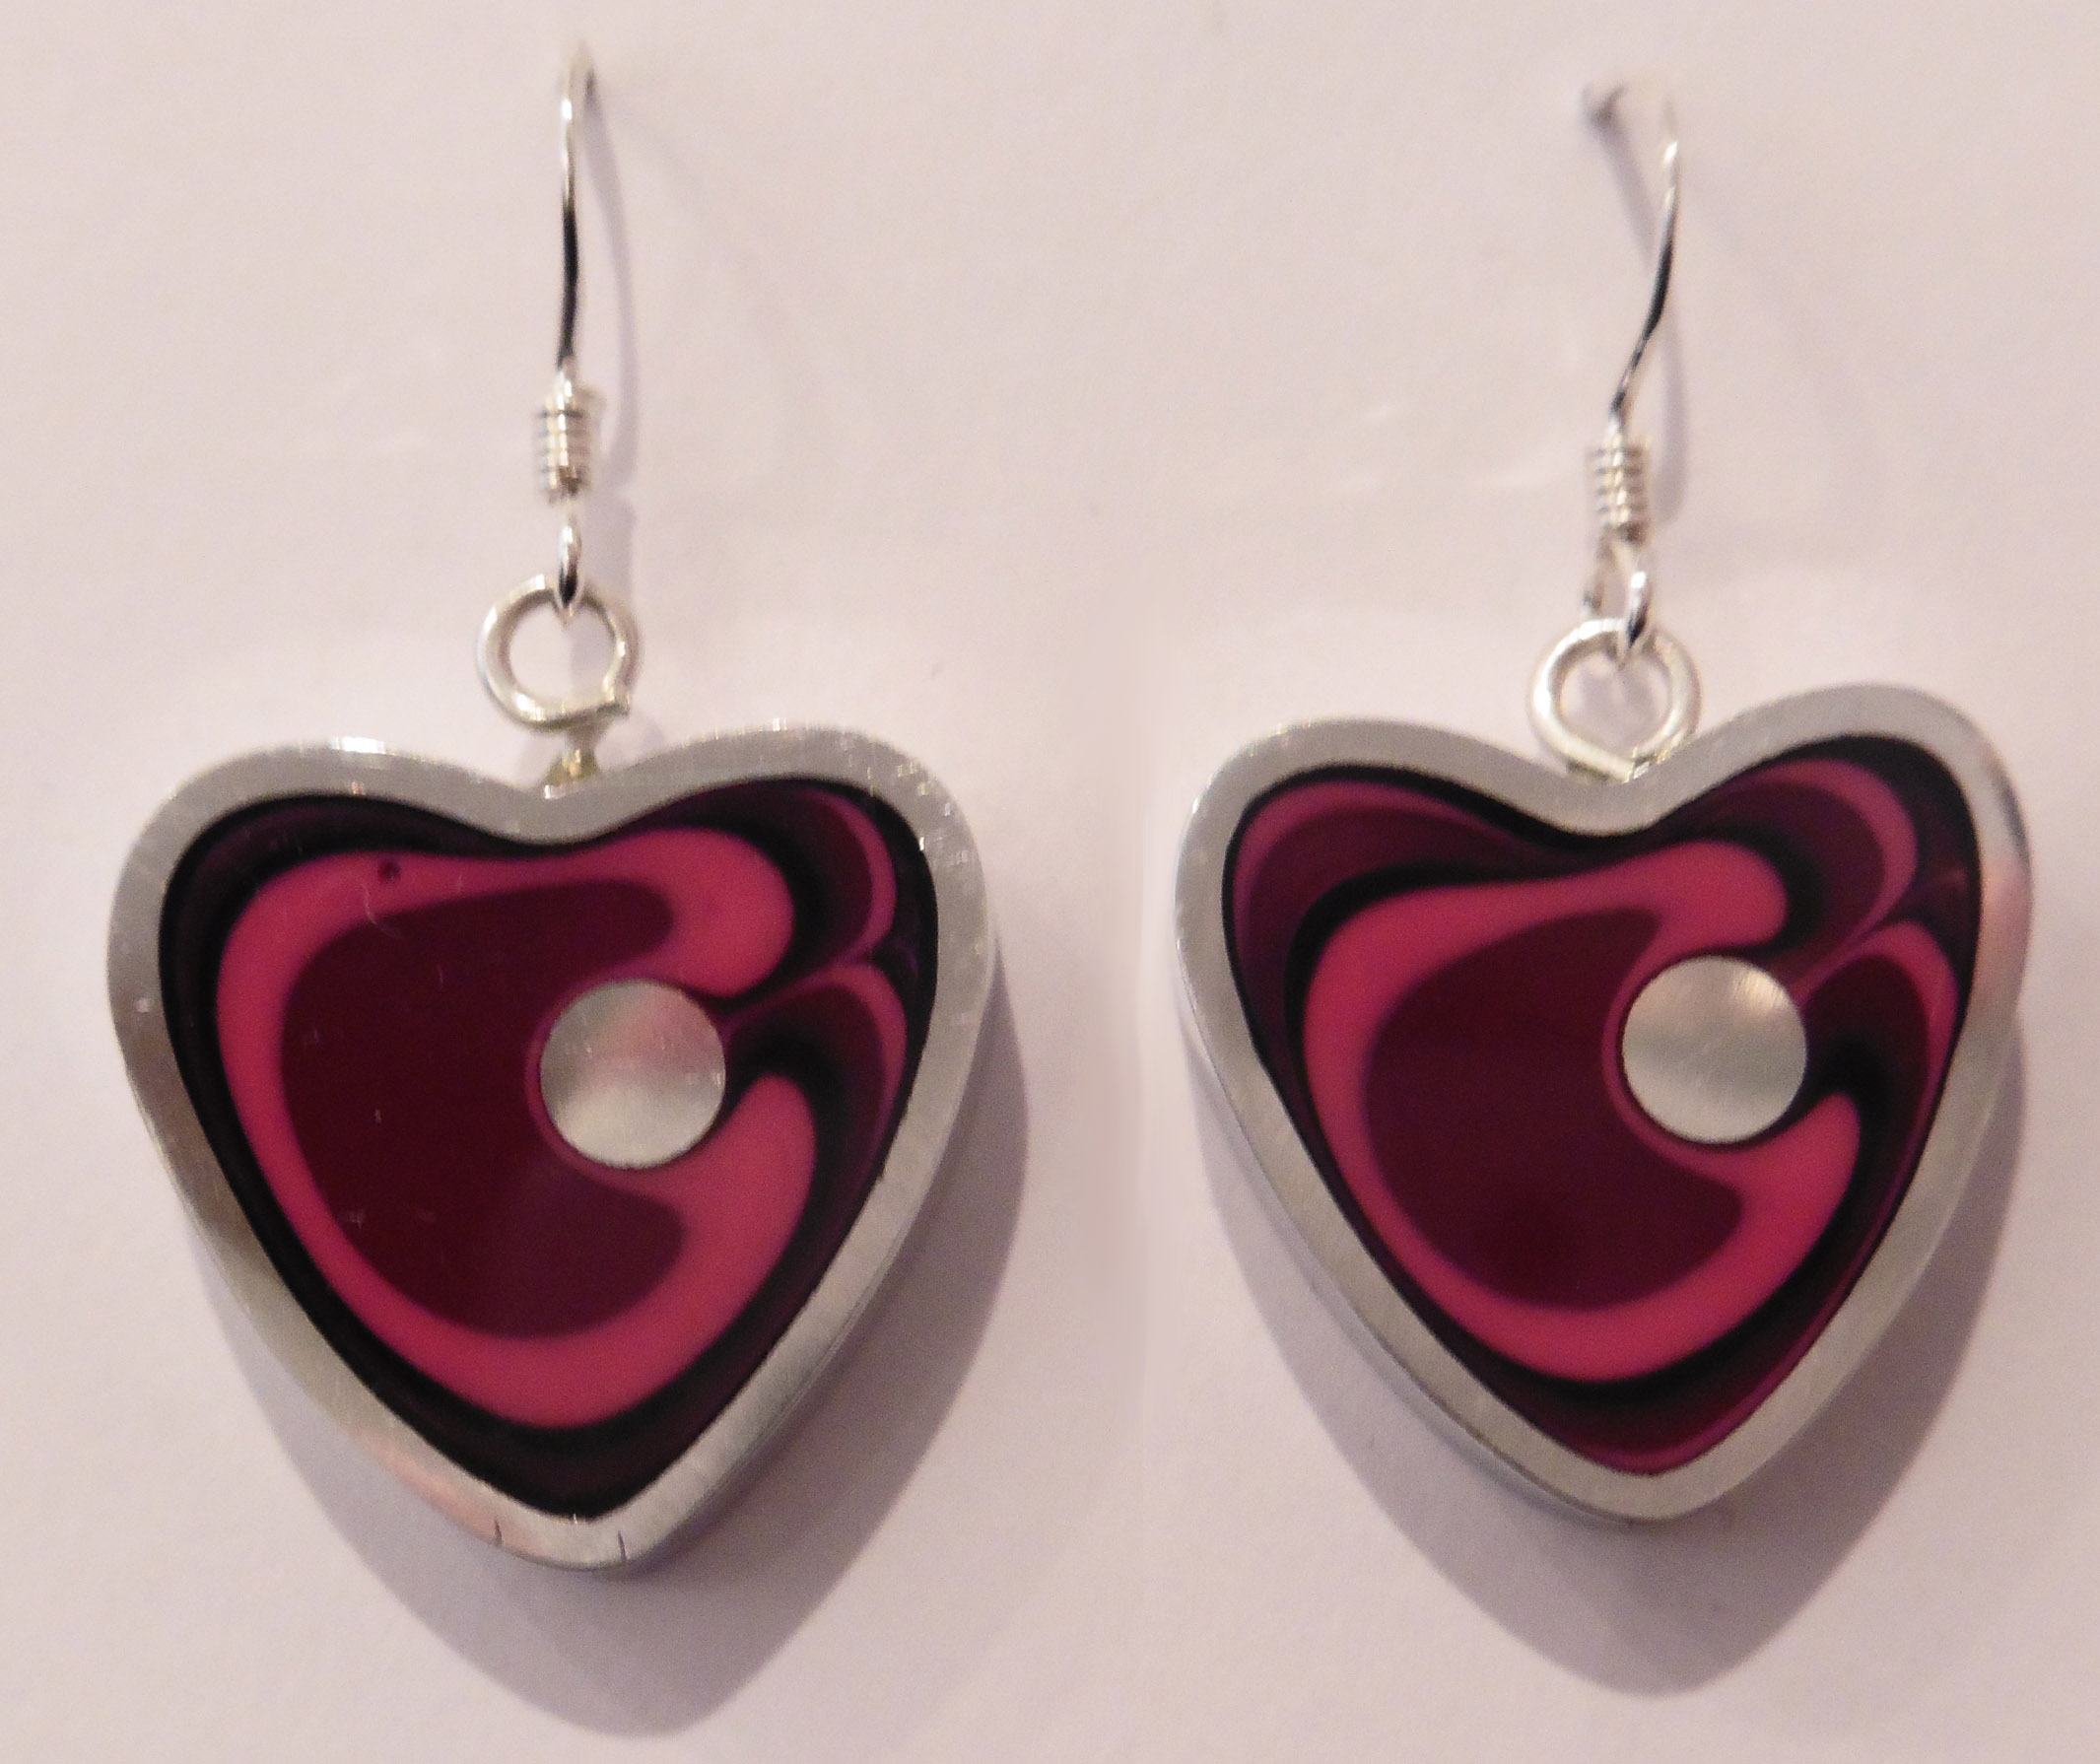 Heart azalea earrings